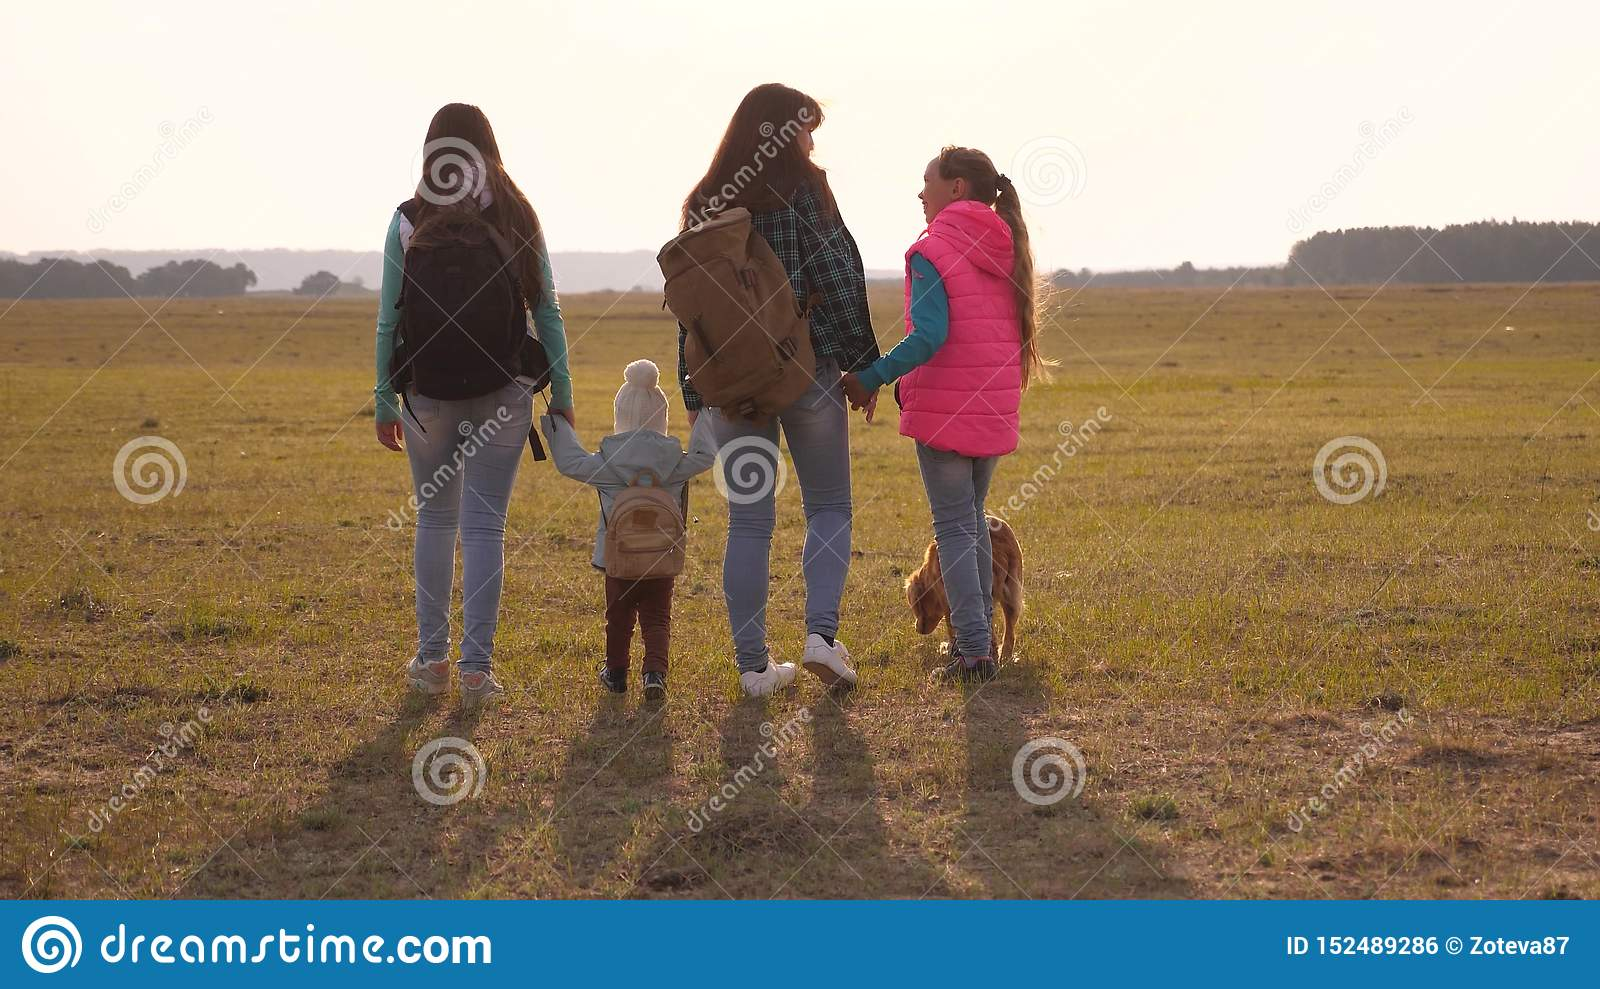 Family with backpacks travels with a dog. teamwork of a close-knit family. mother, daughters and home pets tourists